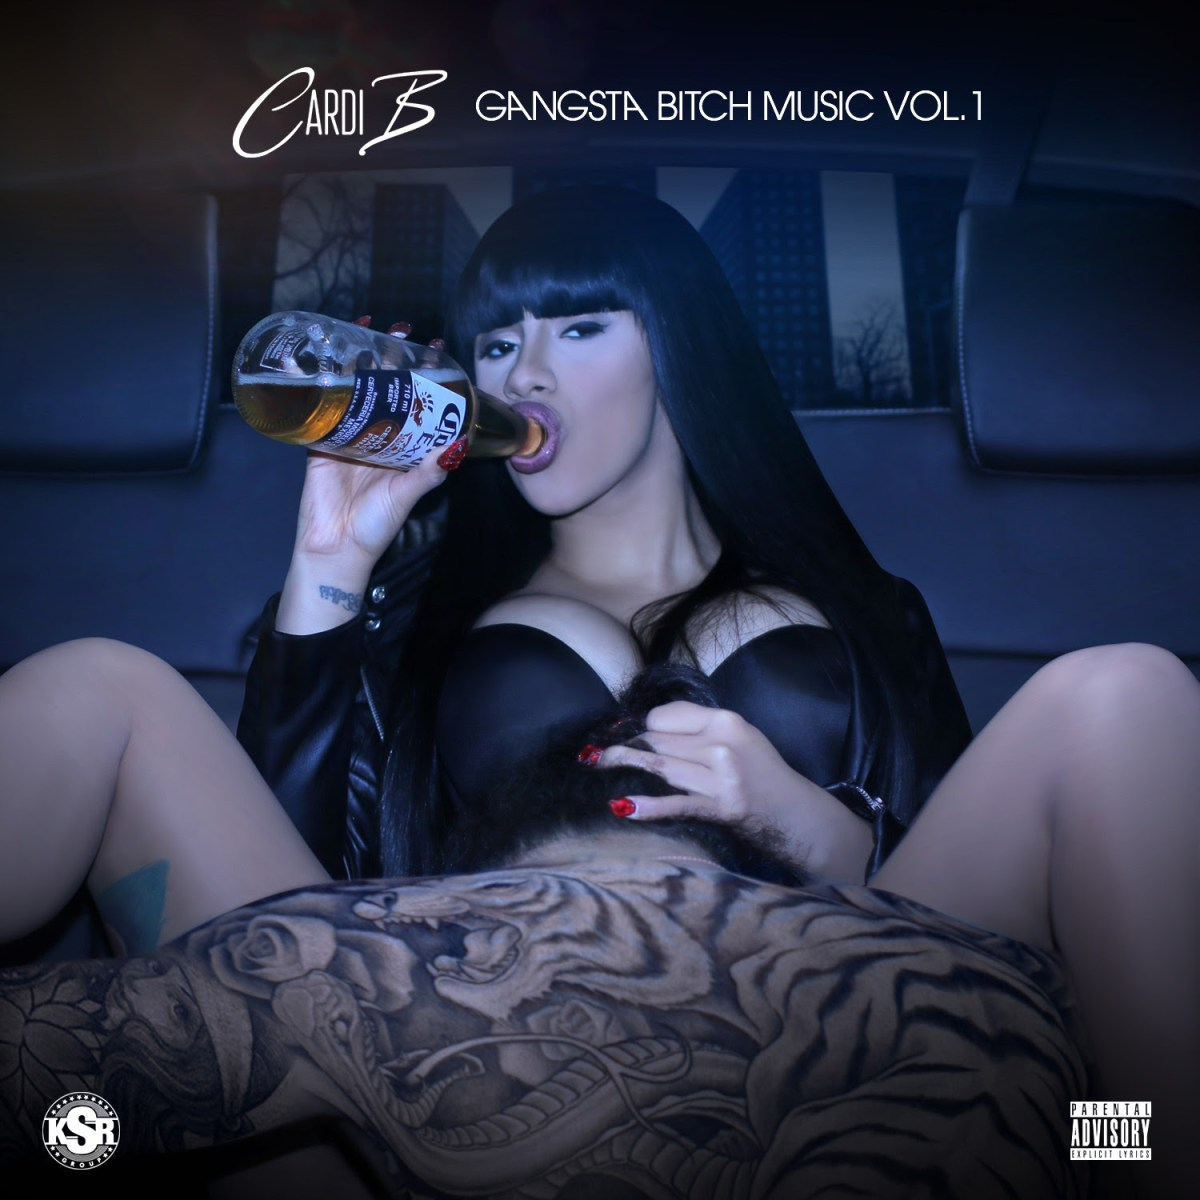 Cardi B - Gangsta Bitch Music Vol 1